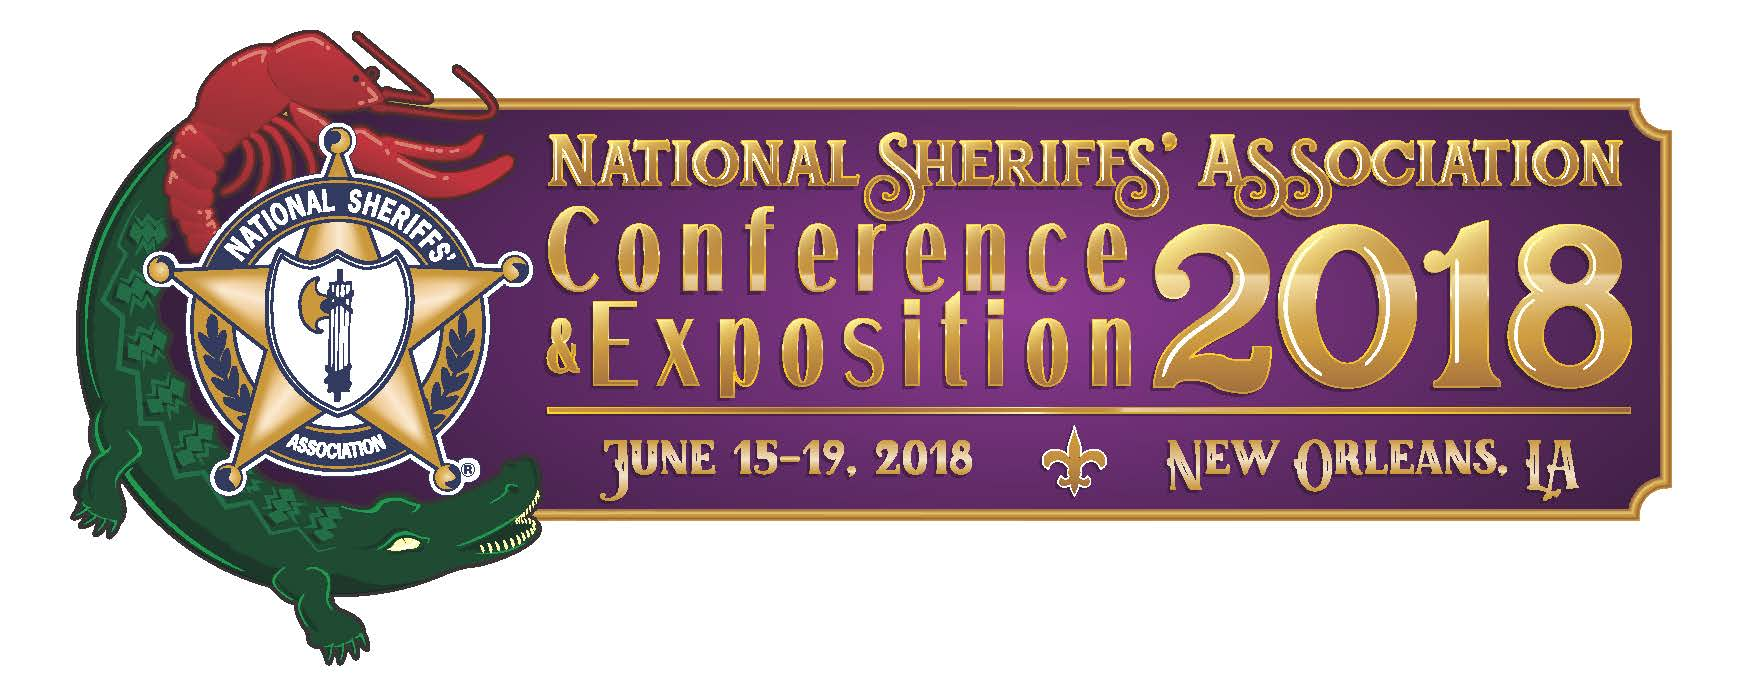 National Sheriffs' Association Conference & Exposition 2018